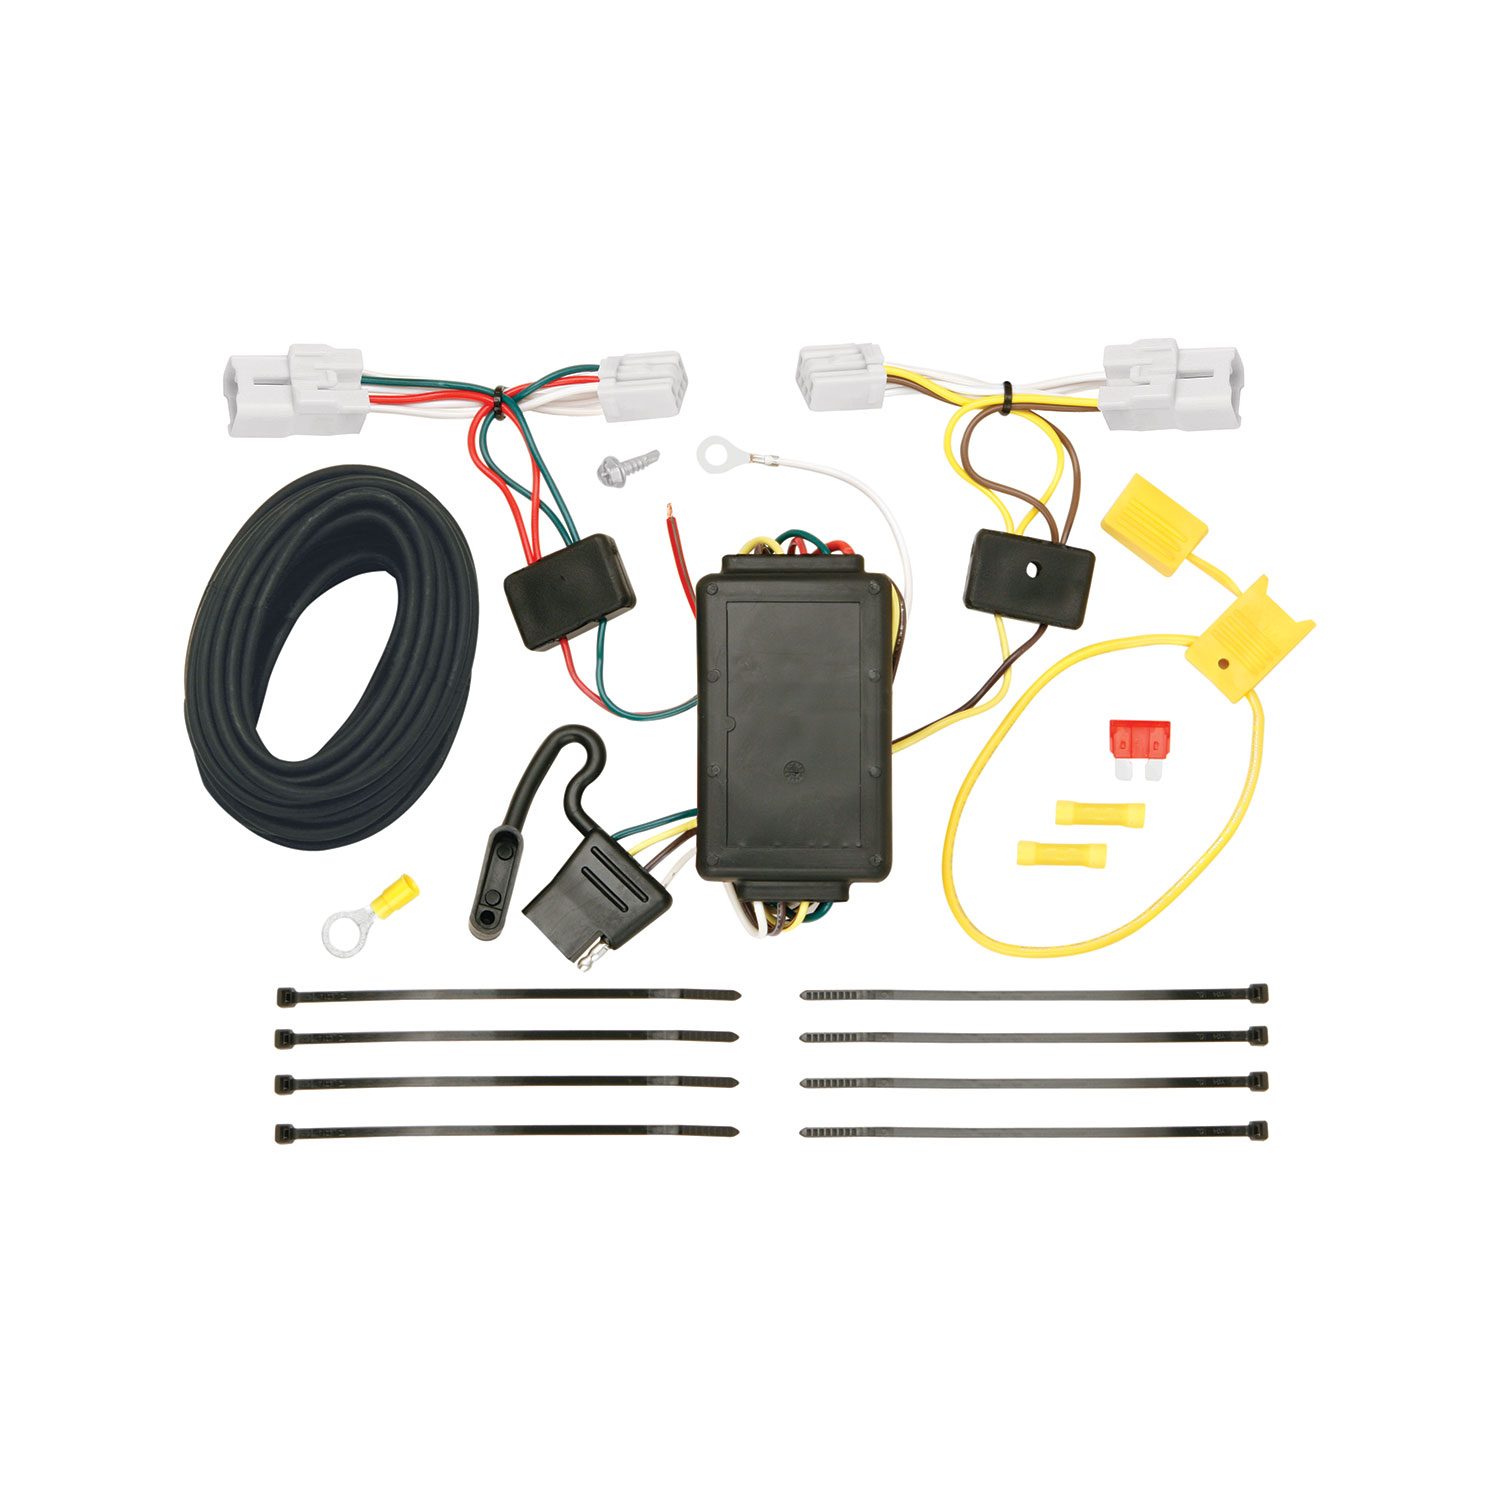 tekonsha 118517 trailer wiring connector t one 4 way flat replacement for oem wiring harness [ 1500 x 1500 Pixel ]